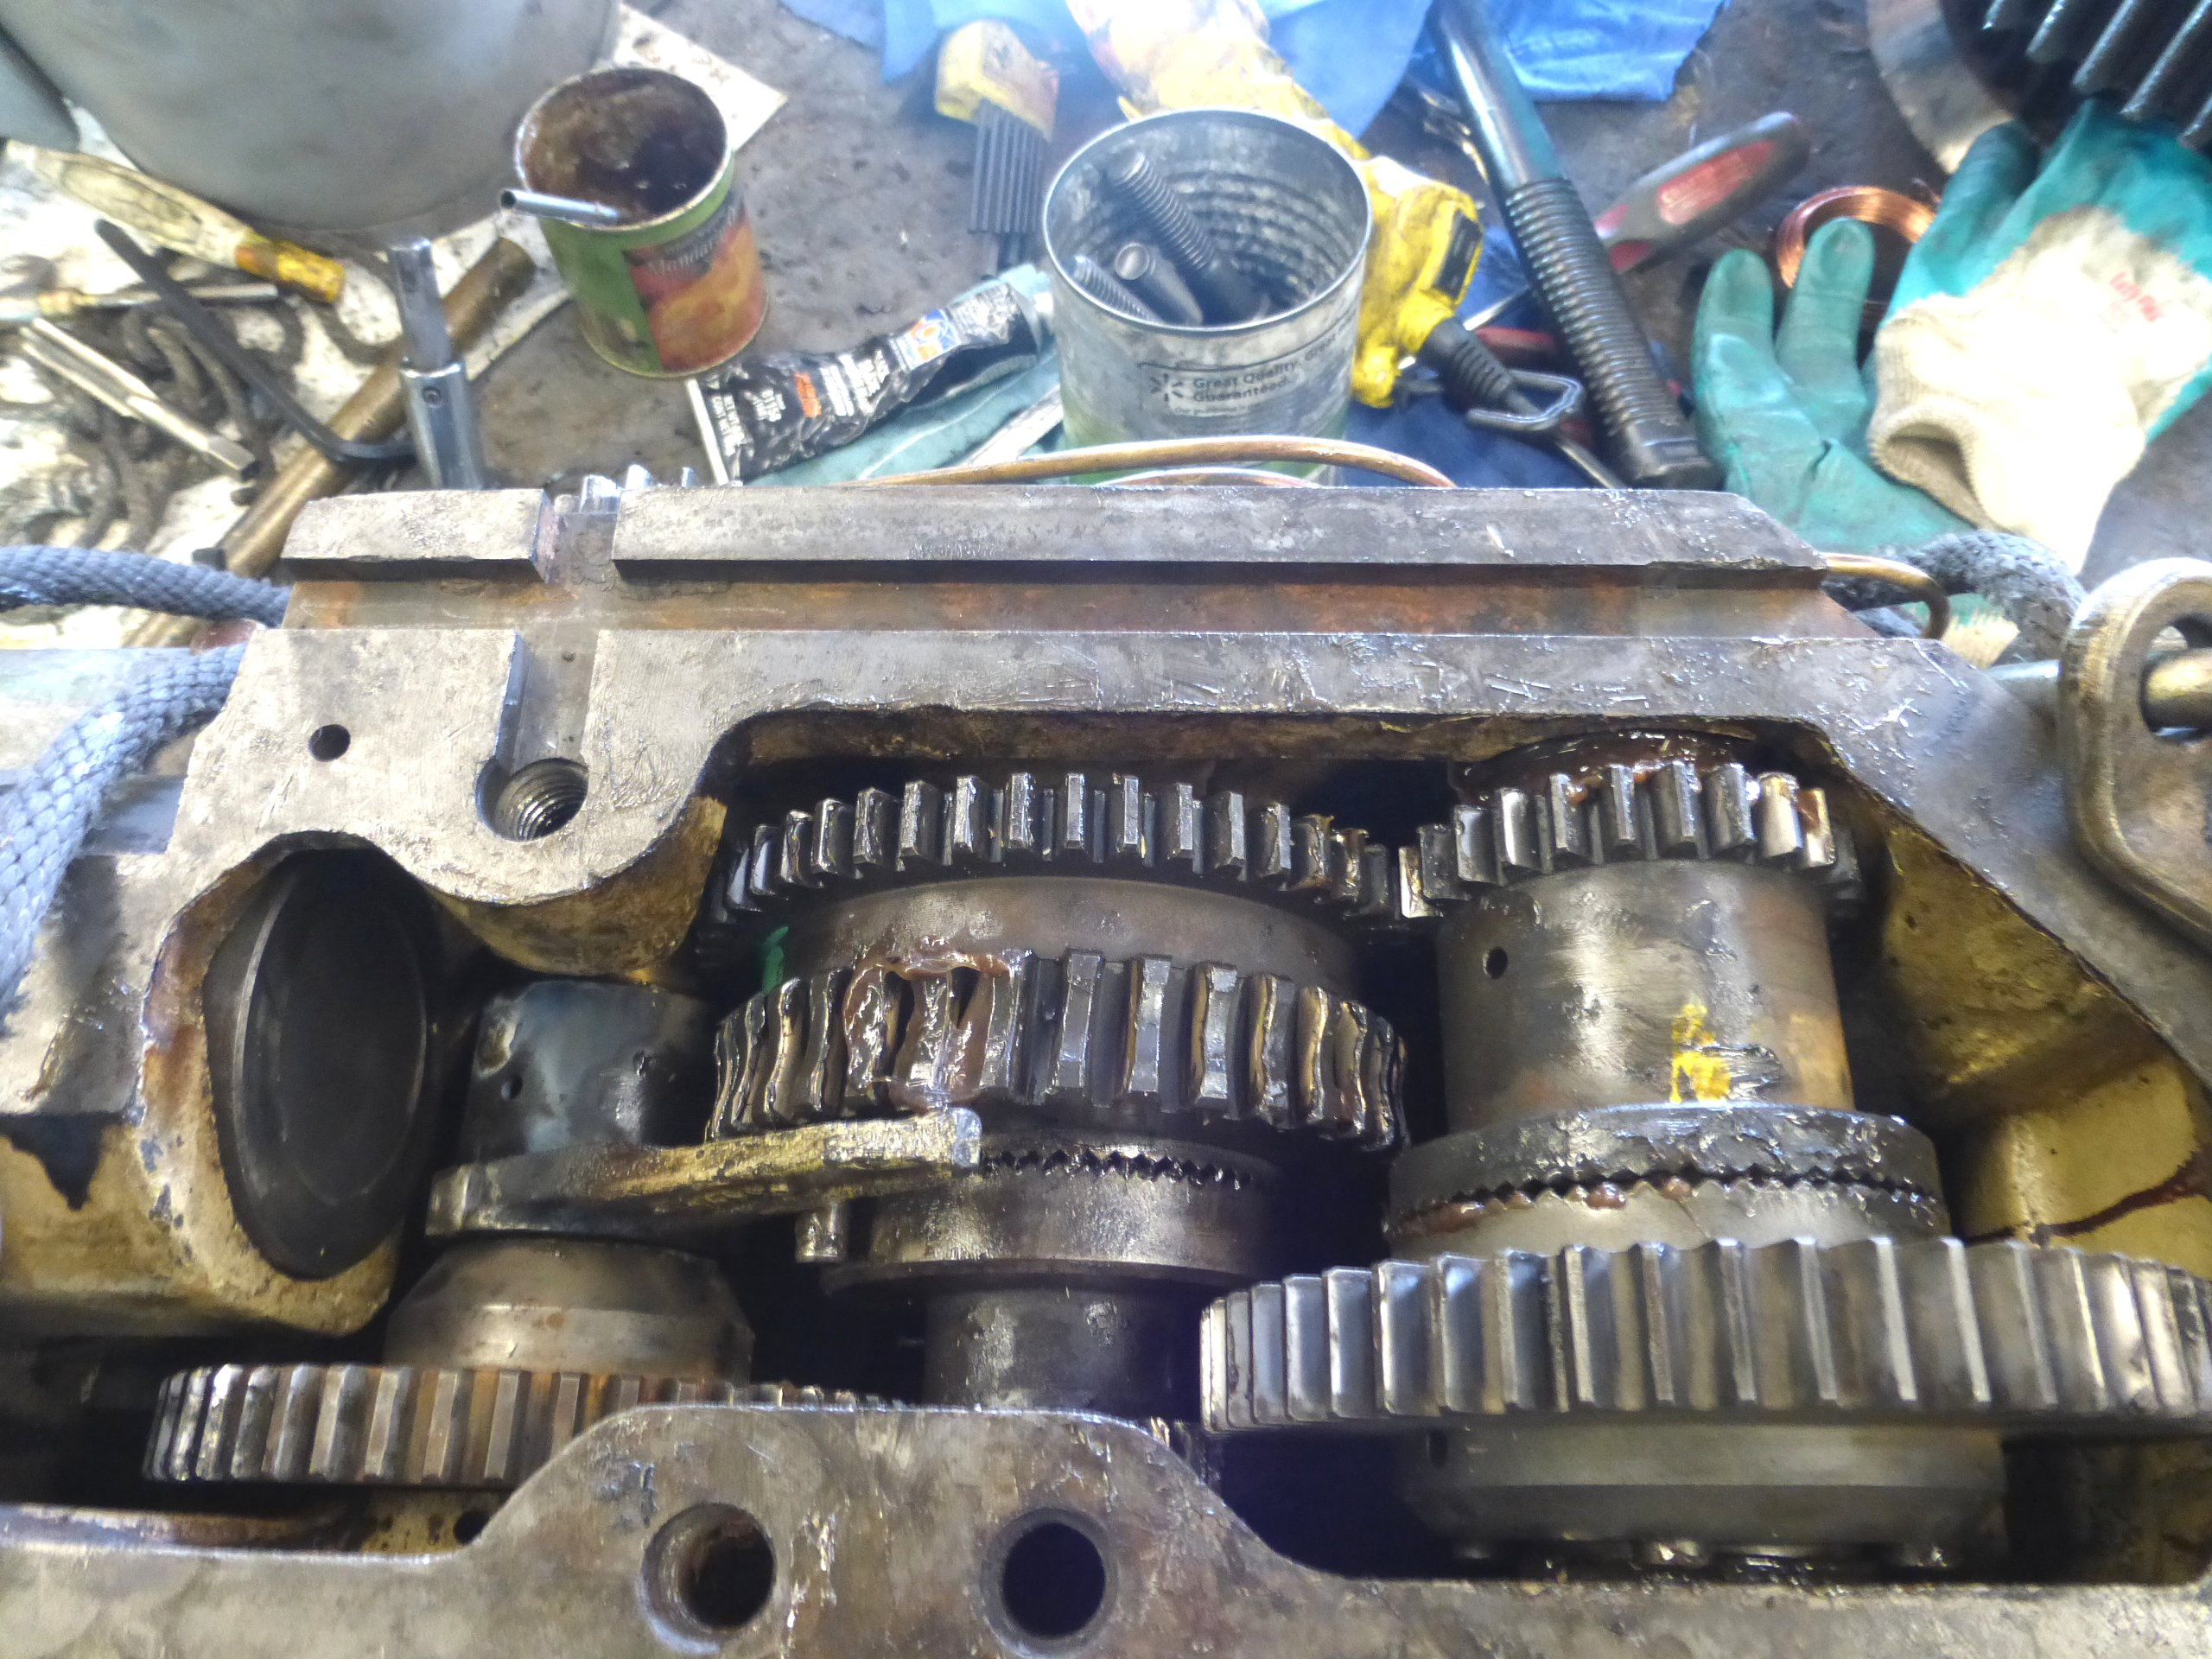 TUDA Lathe Carriage Interlock Repair